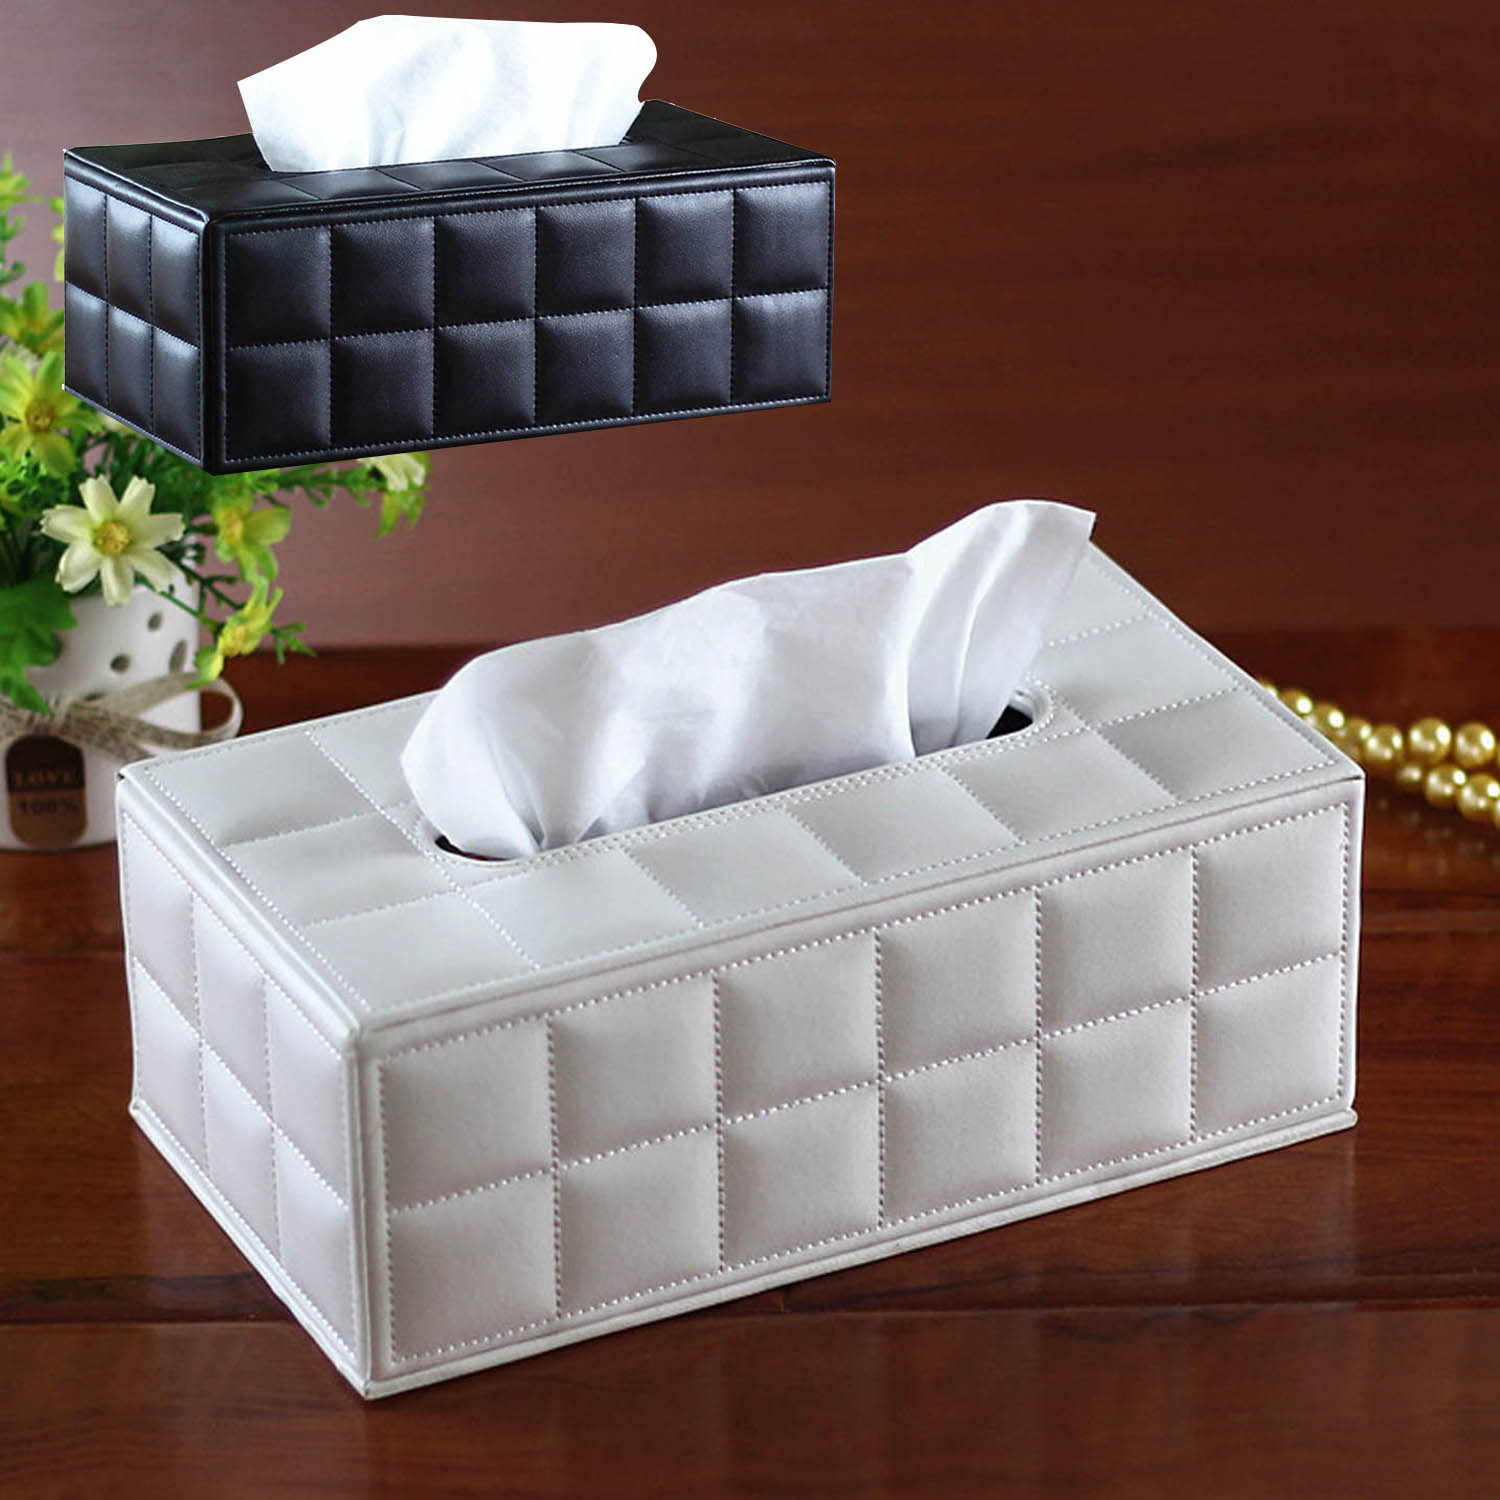 Behogar Facial Tissue Box Cover PU Leather Hotel Car Rectangle Container Towel Napkin Tissue Case Holder Home Office Supplies